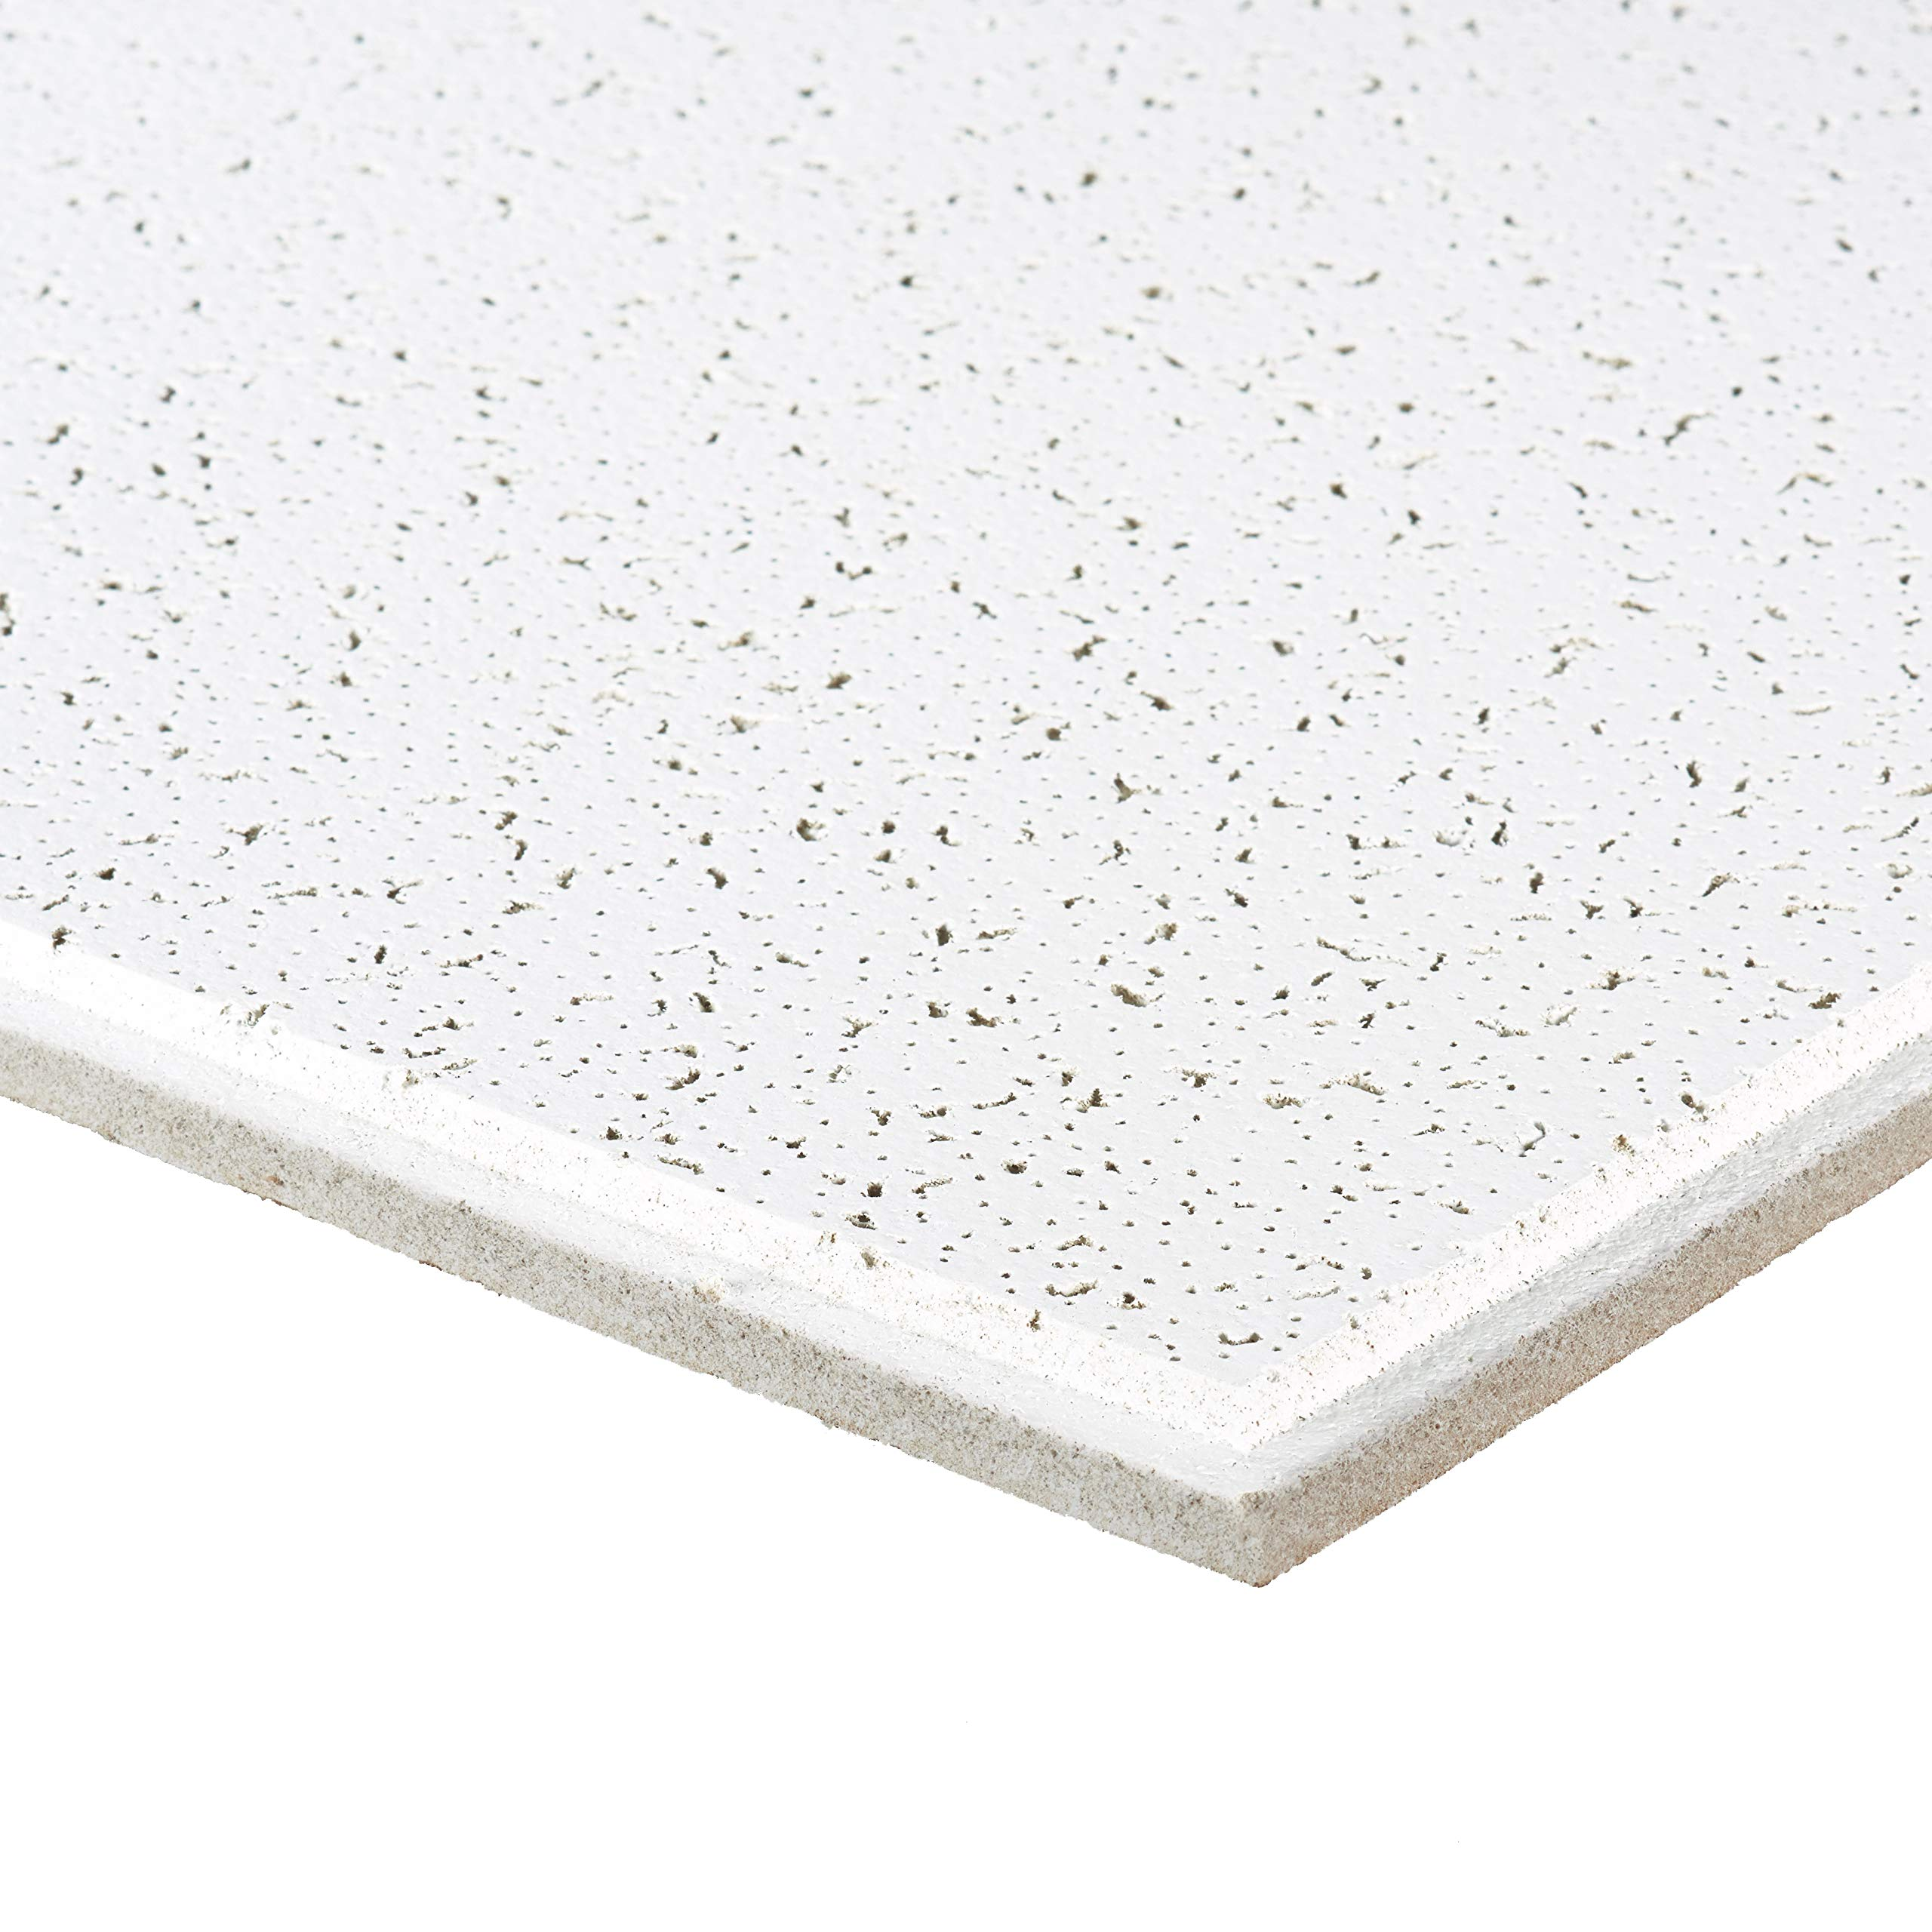 Armstrong Ceiling Tiles; 2x2 Ceiling Tiles - Acoustic Ceilings for Suspended Ceiling Grid; Drop Ceiling Tiles Direct from the Manufacturer; CORTEGA Item 704 - 16 pc White Tegular by Armstrong (Image #2)